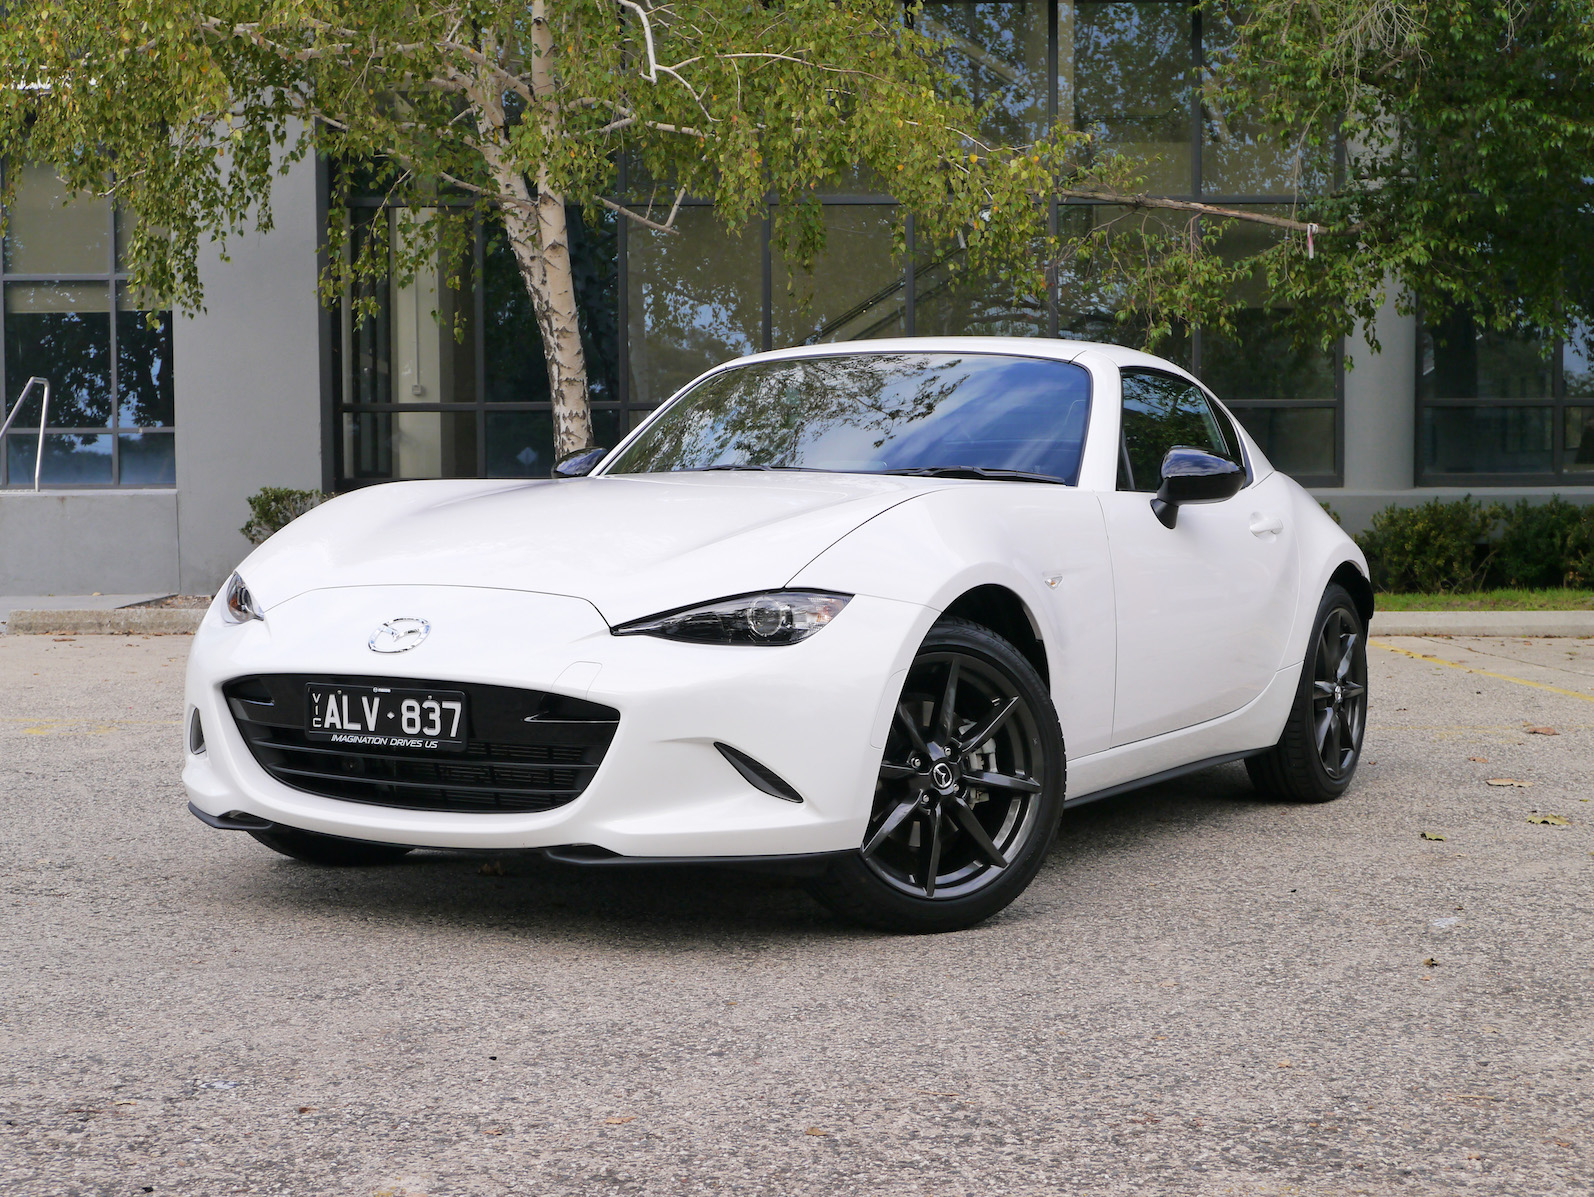 2017 Mazda MX-5 RF Review   A New Take On The MX-5 Ethos